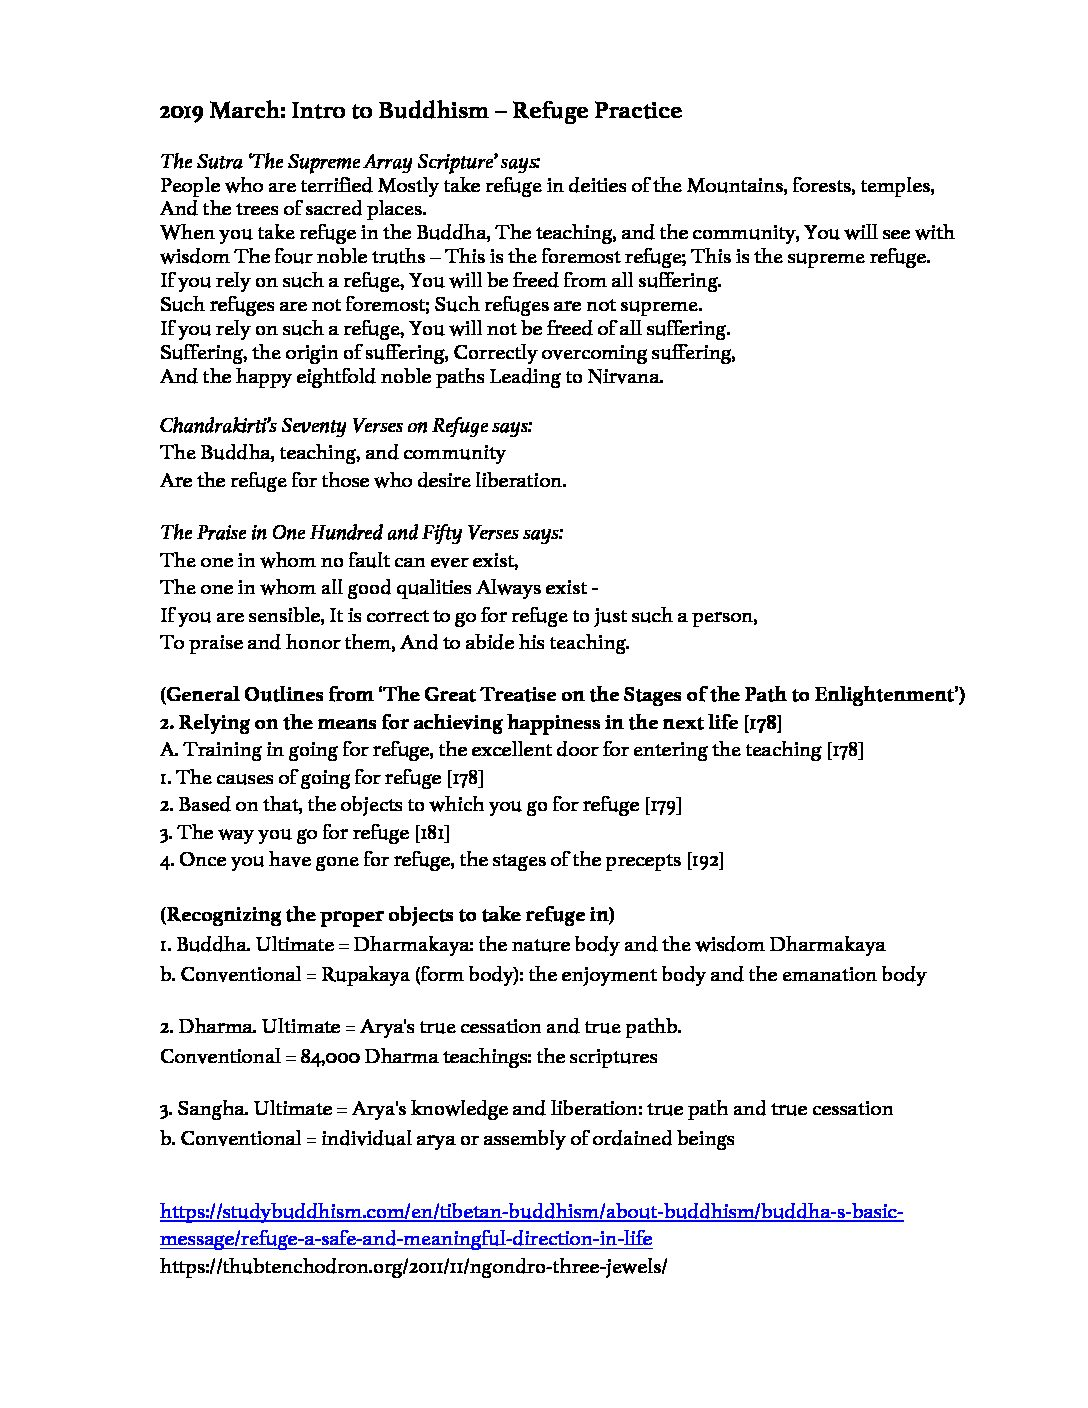 Intro to Buddhism (March 2019 Class handout: Refuge Practice